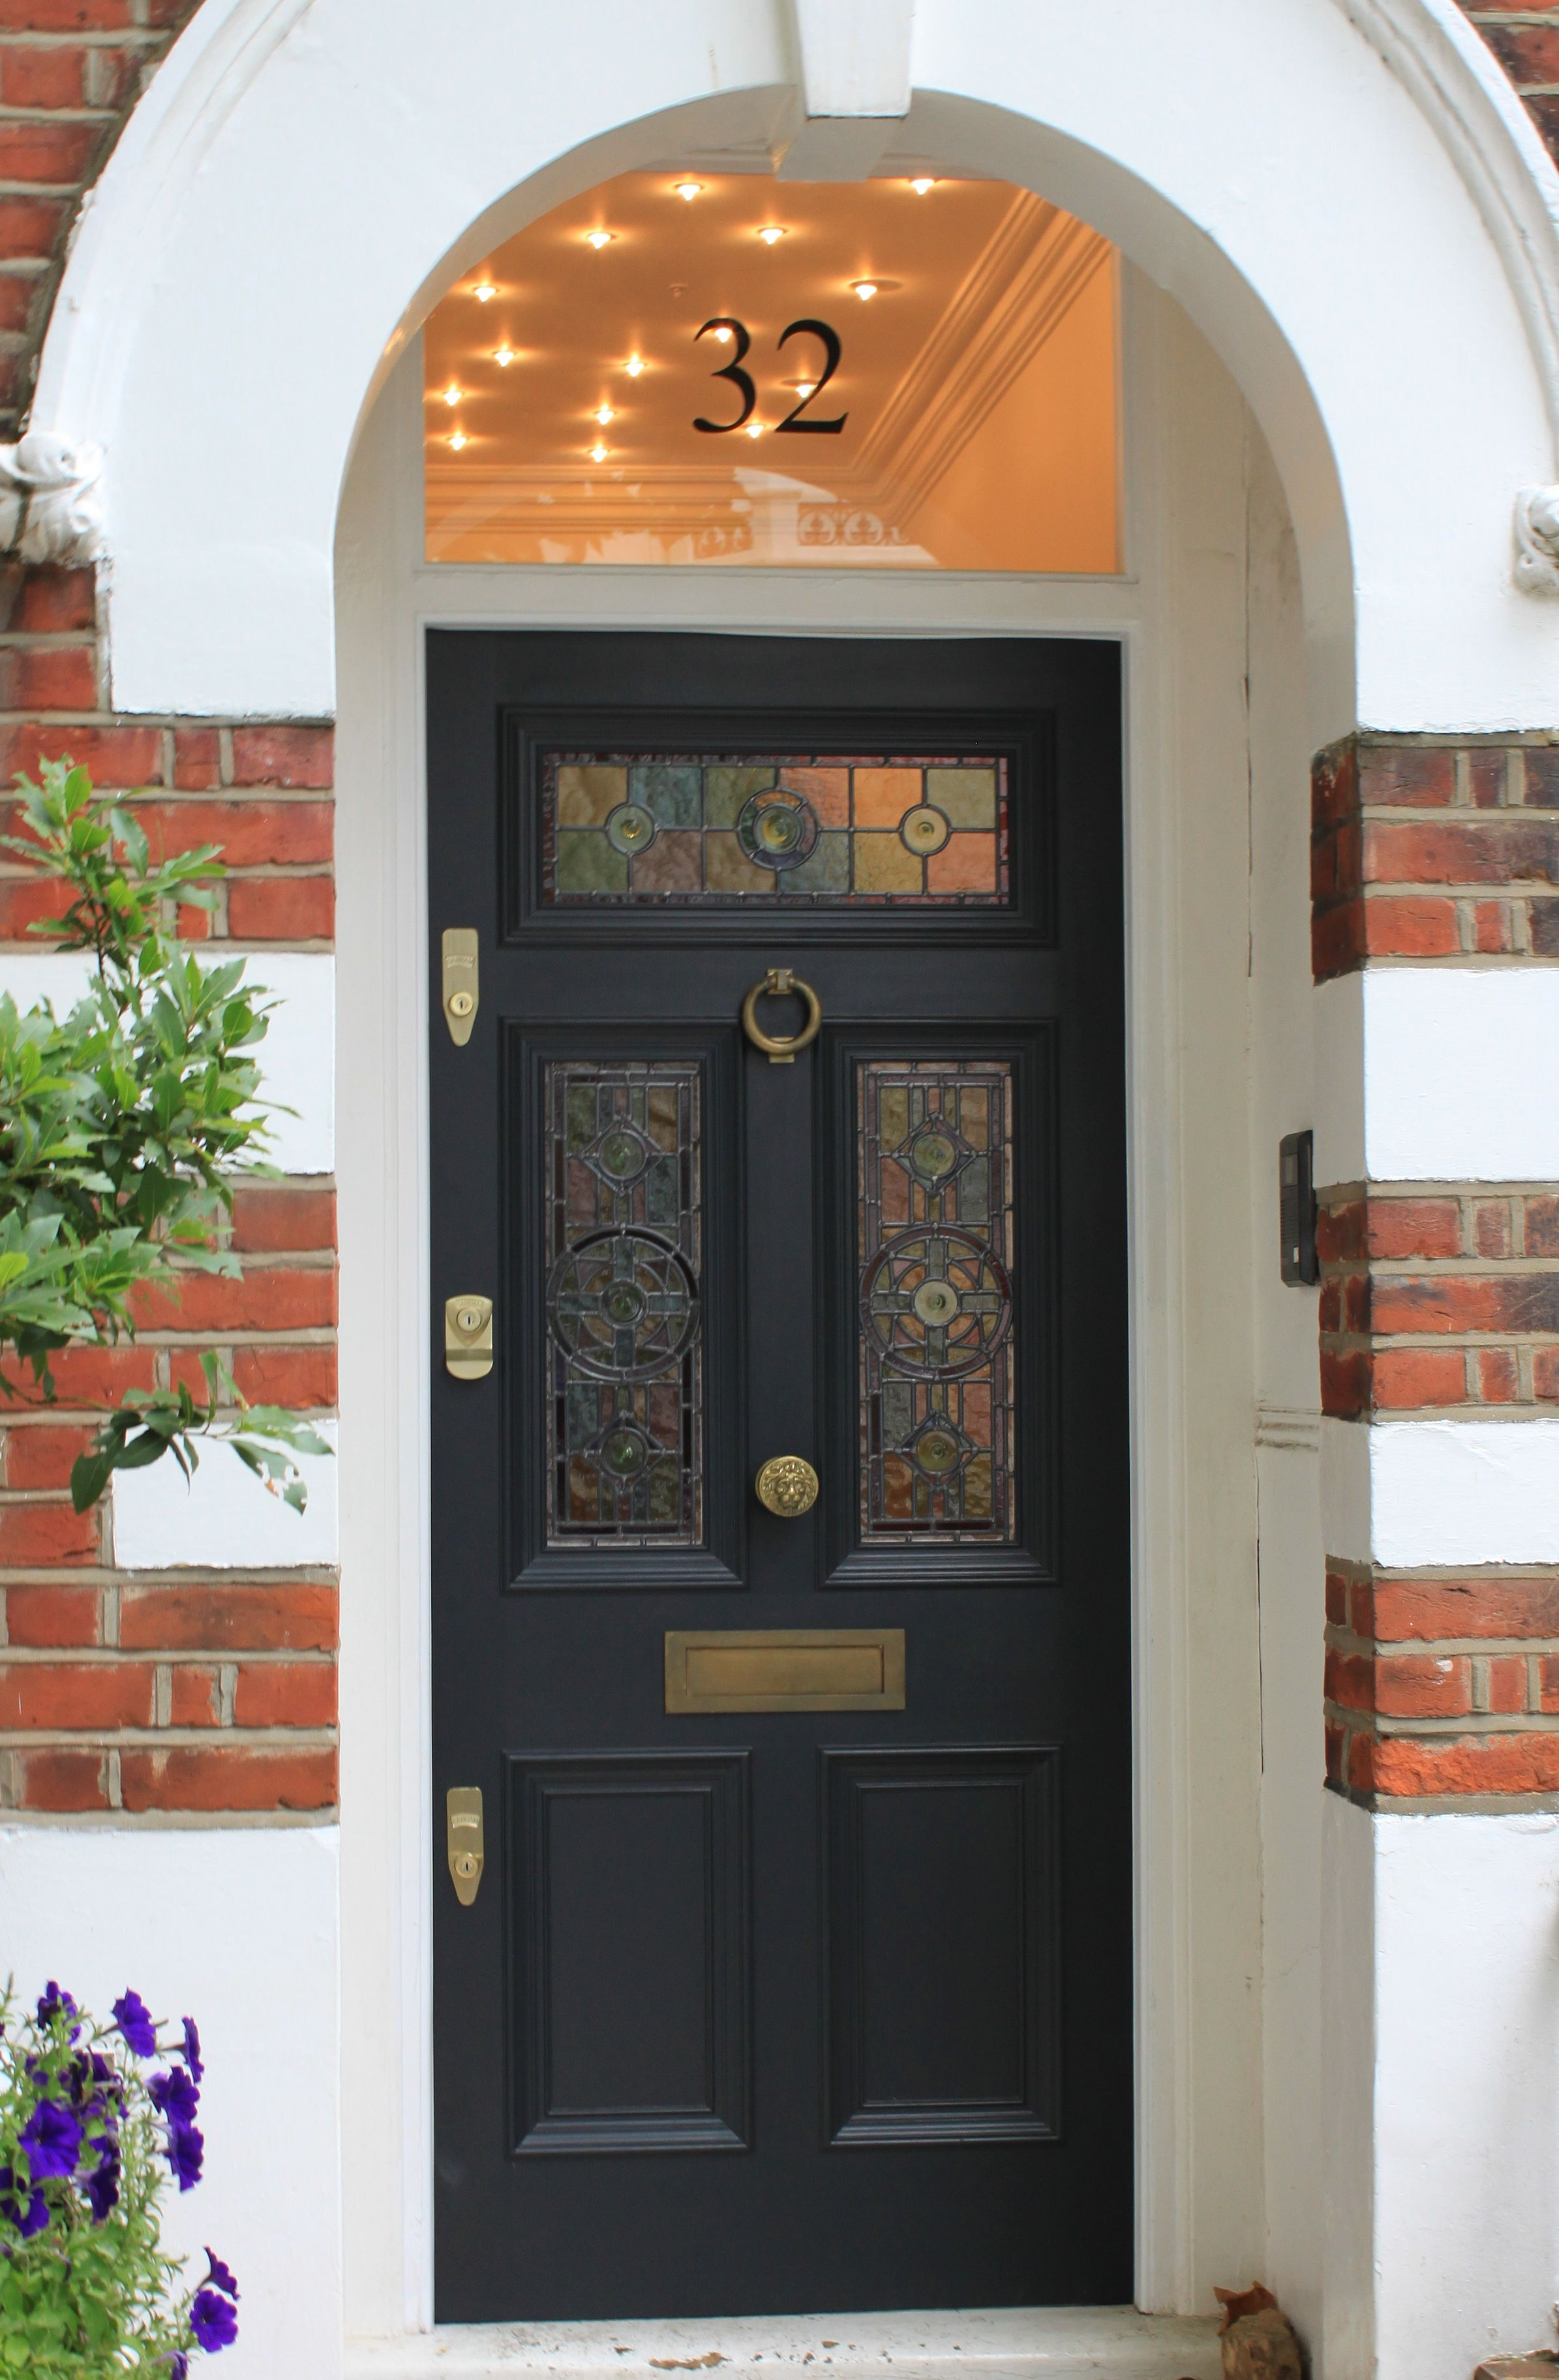 Upvc Double Glazed Edwardian Front Doors Google Search A Little